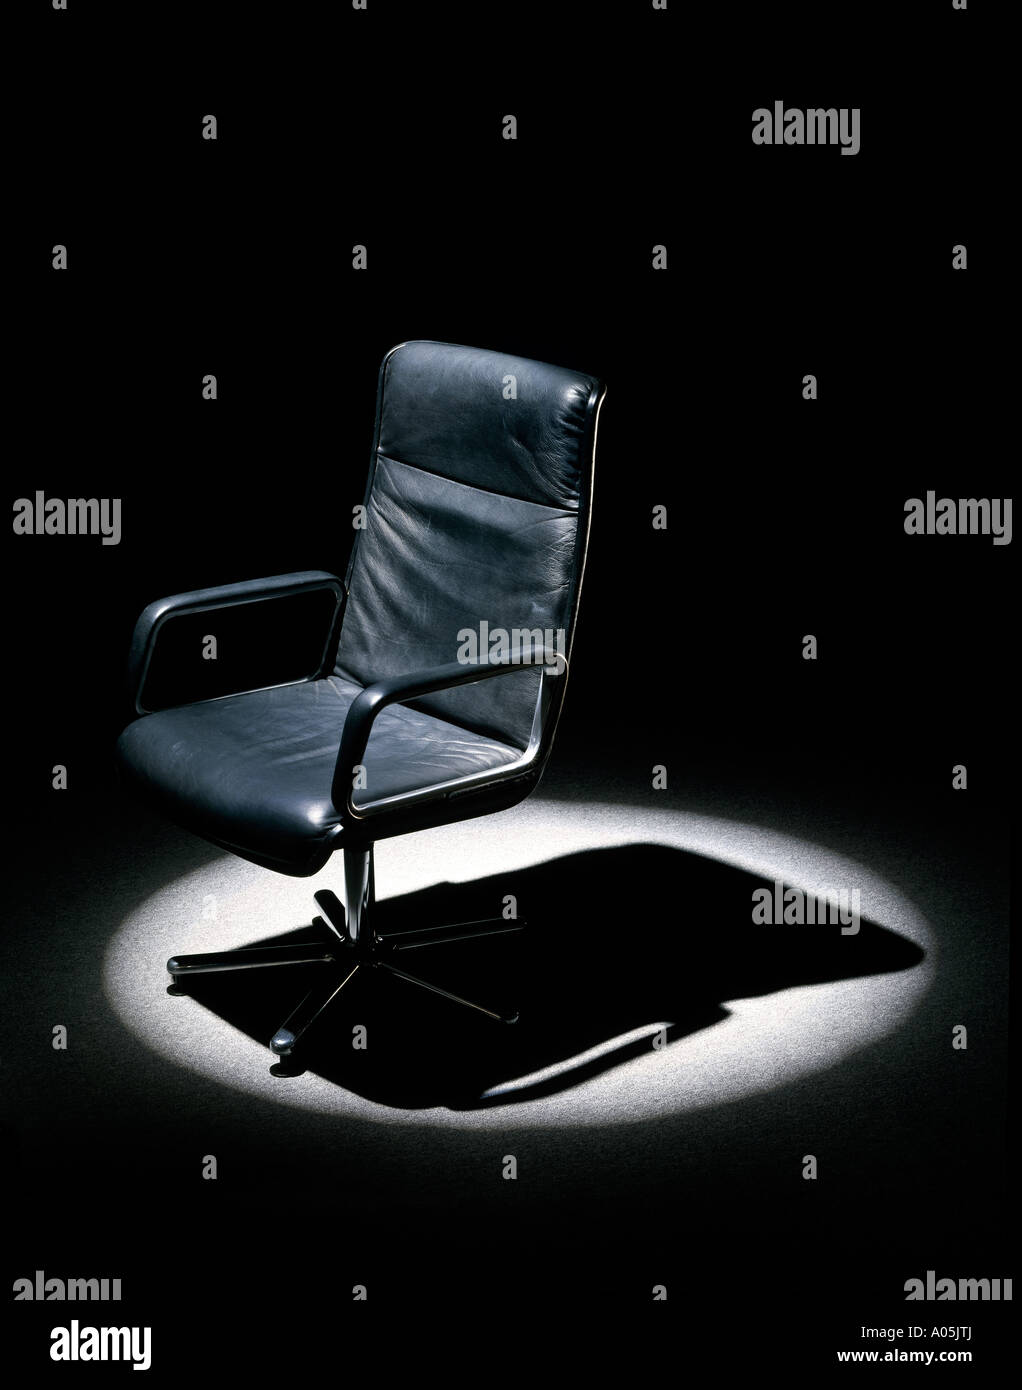 Mastermind chair - Stock Image